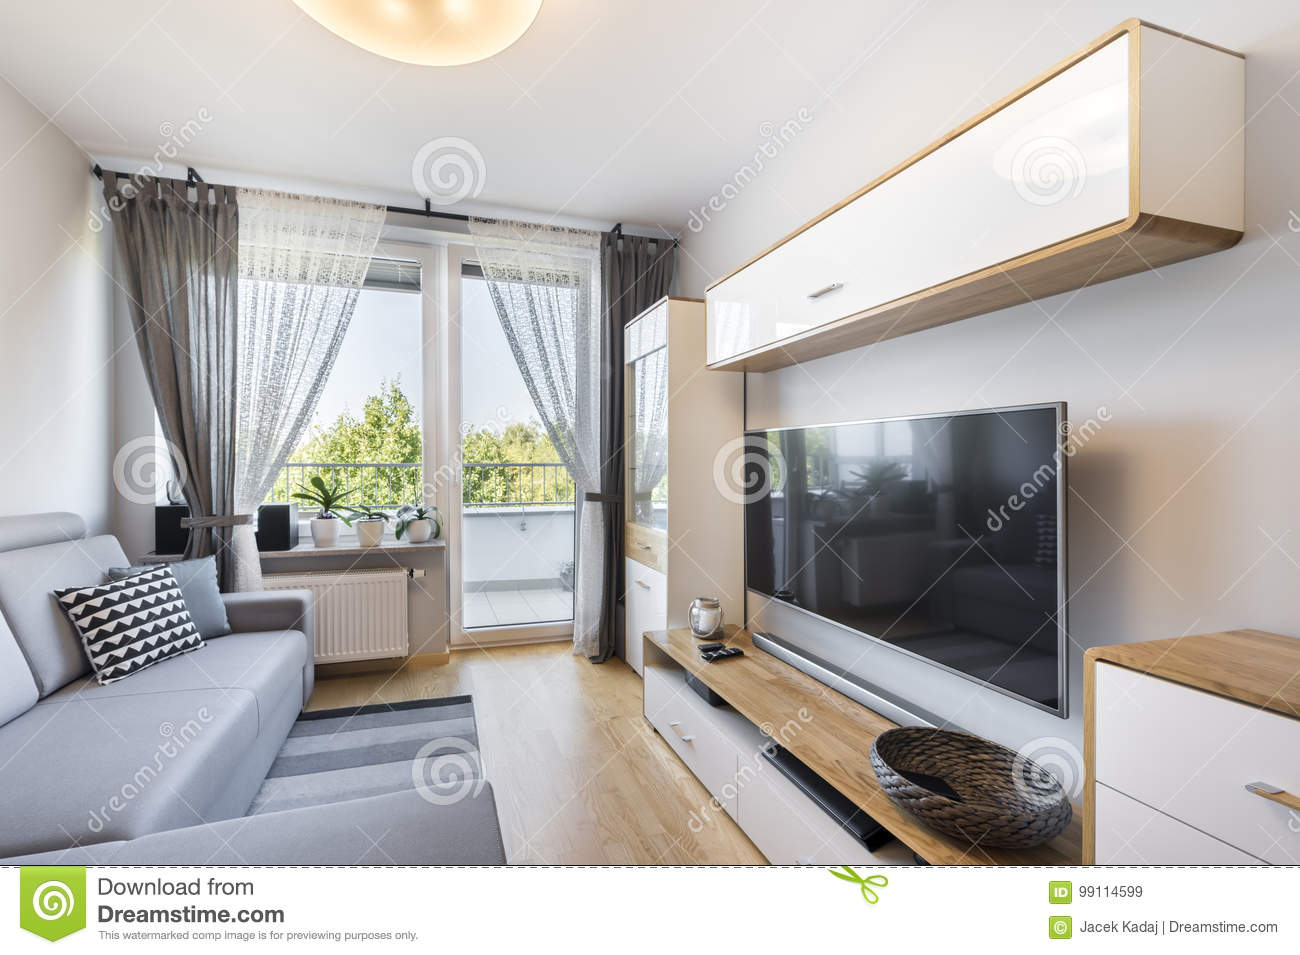 Living Room In Small Apartment Stock Image - Image of corner ...